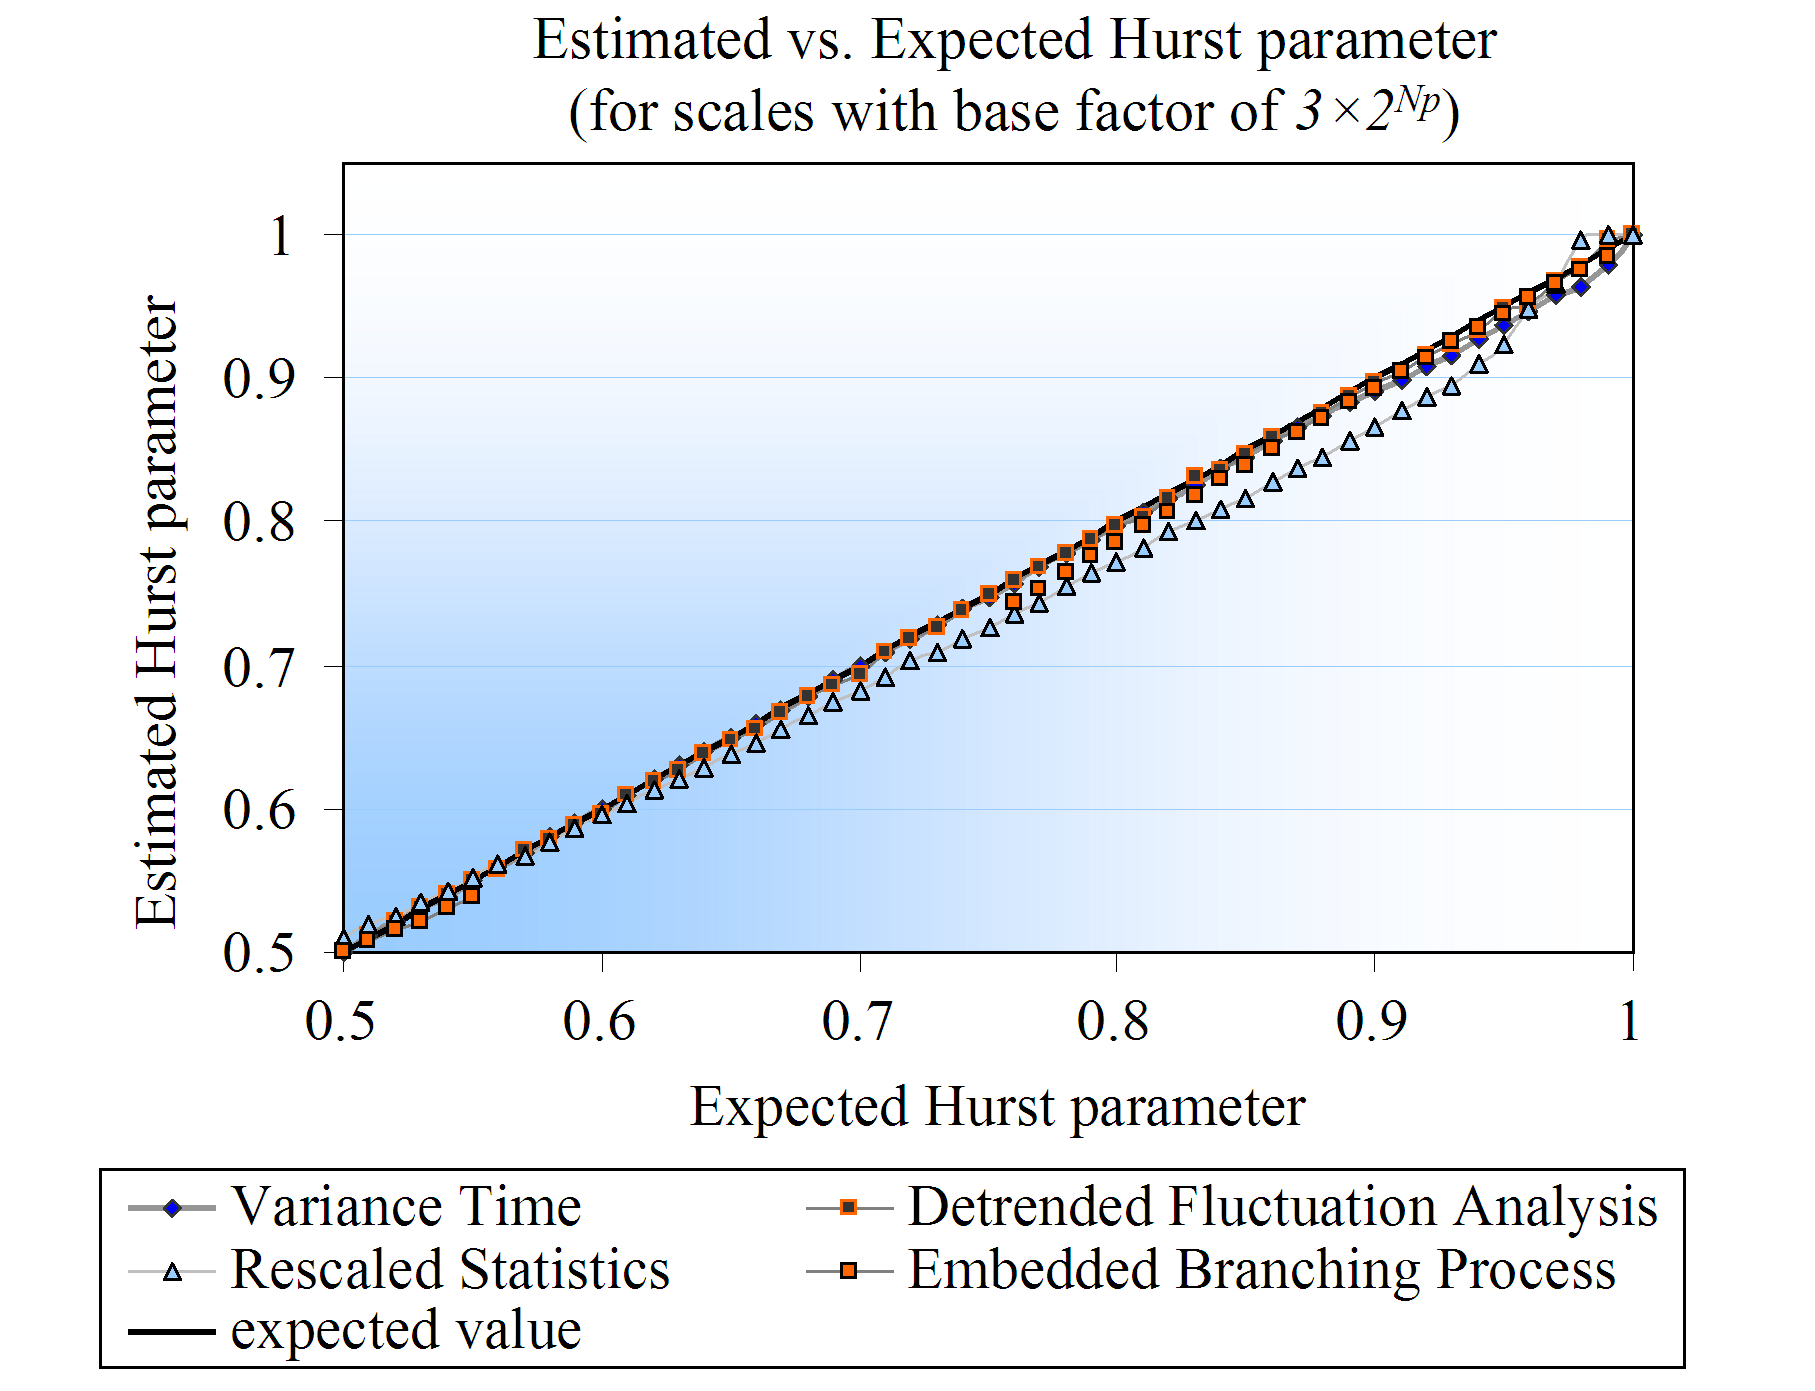 Figure 4.11: Comparison between the expected and the estimated Hurst parameter values, this time for scales of type 3 2 Np.